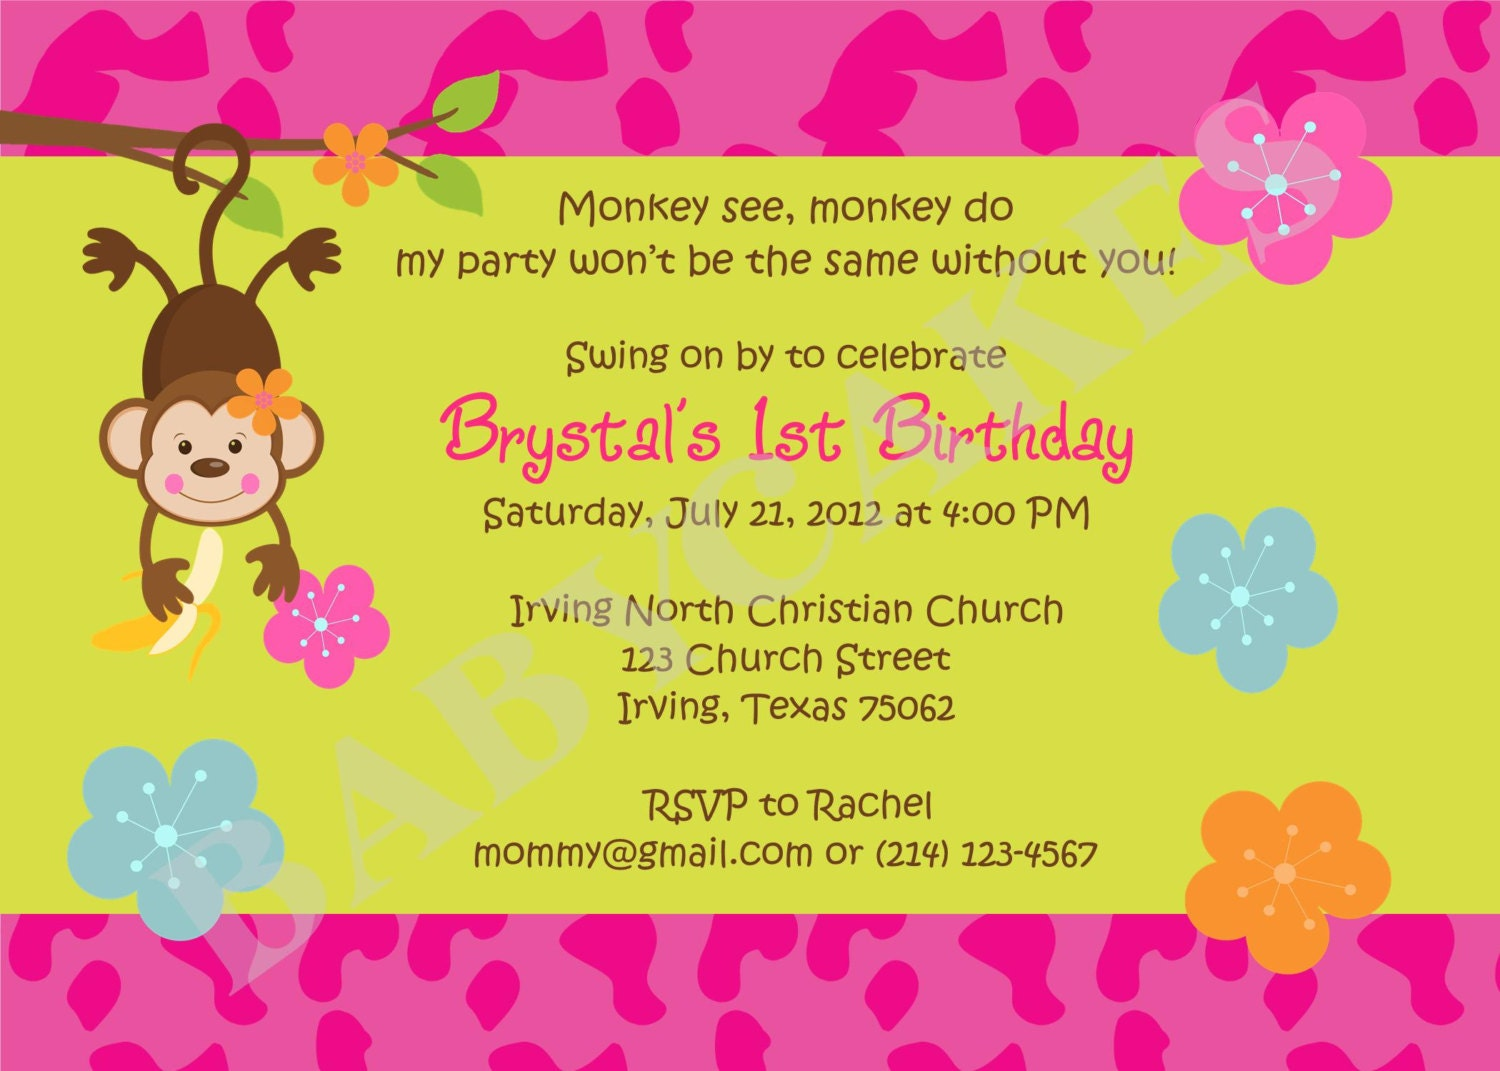 Monkey love party invitations - photo#5